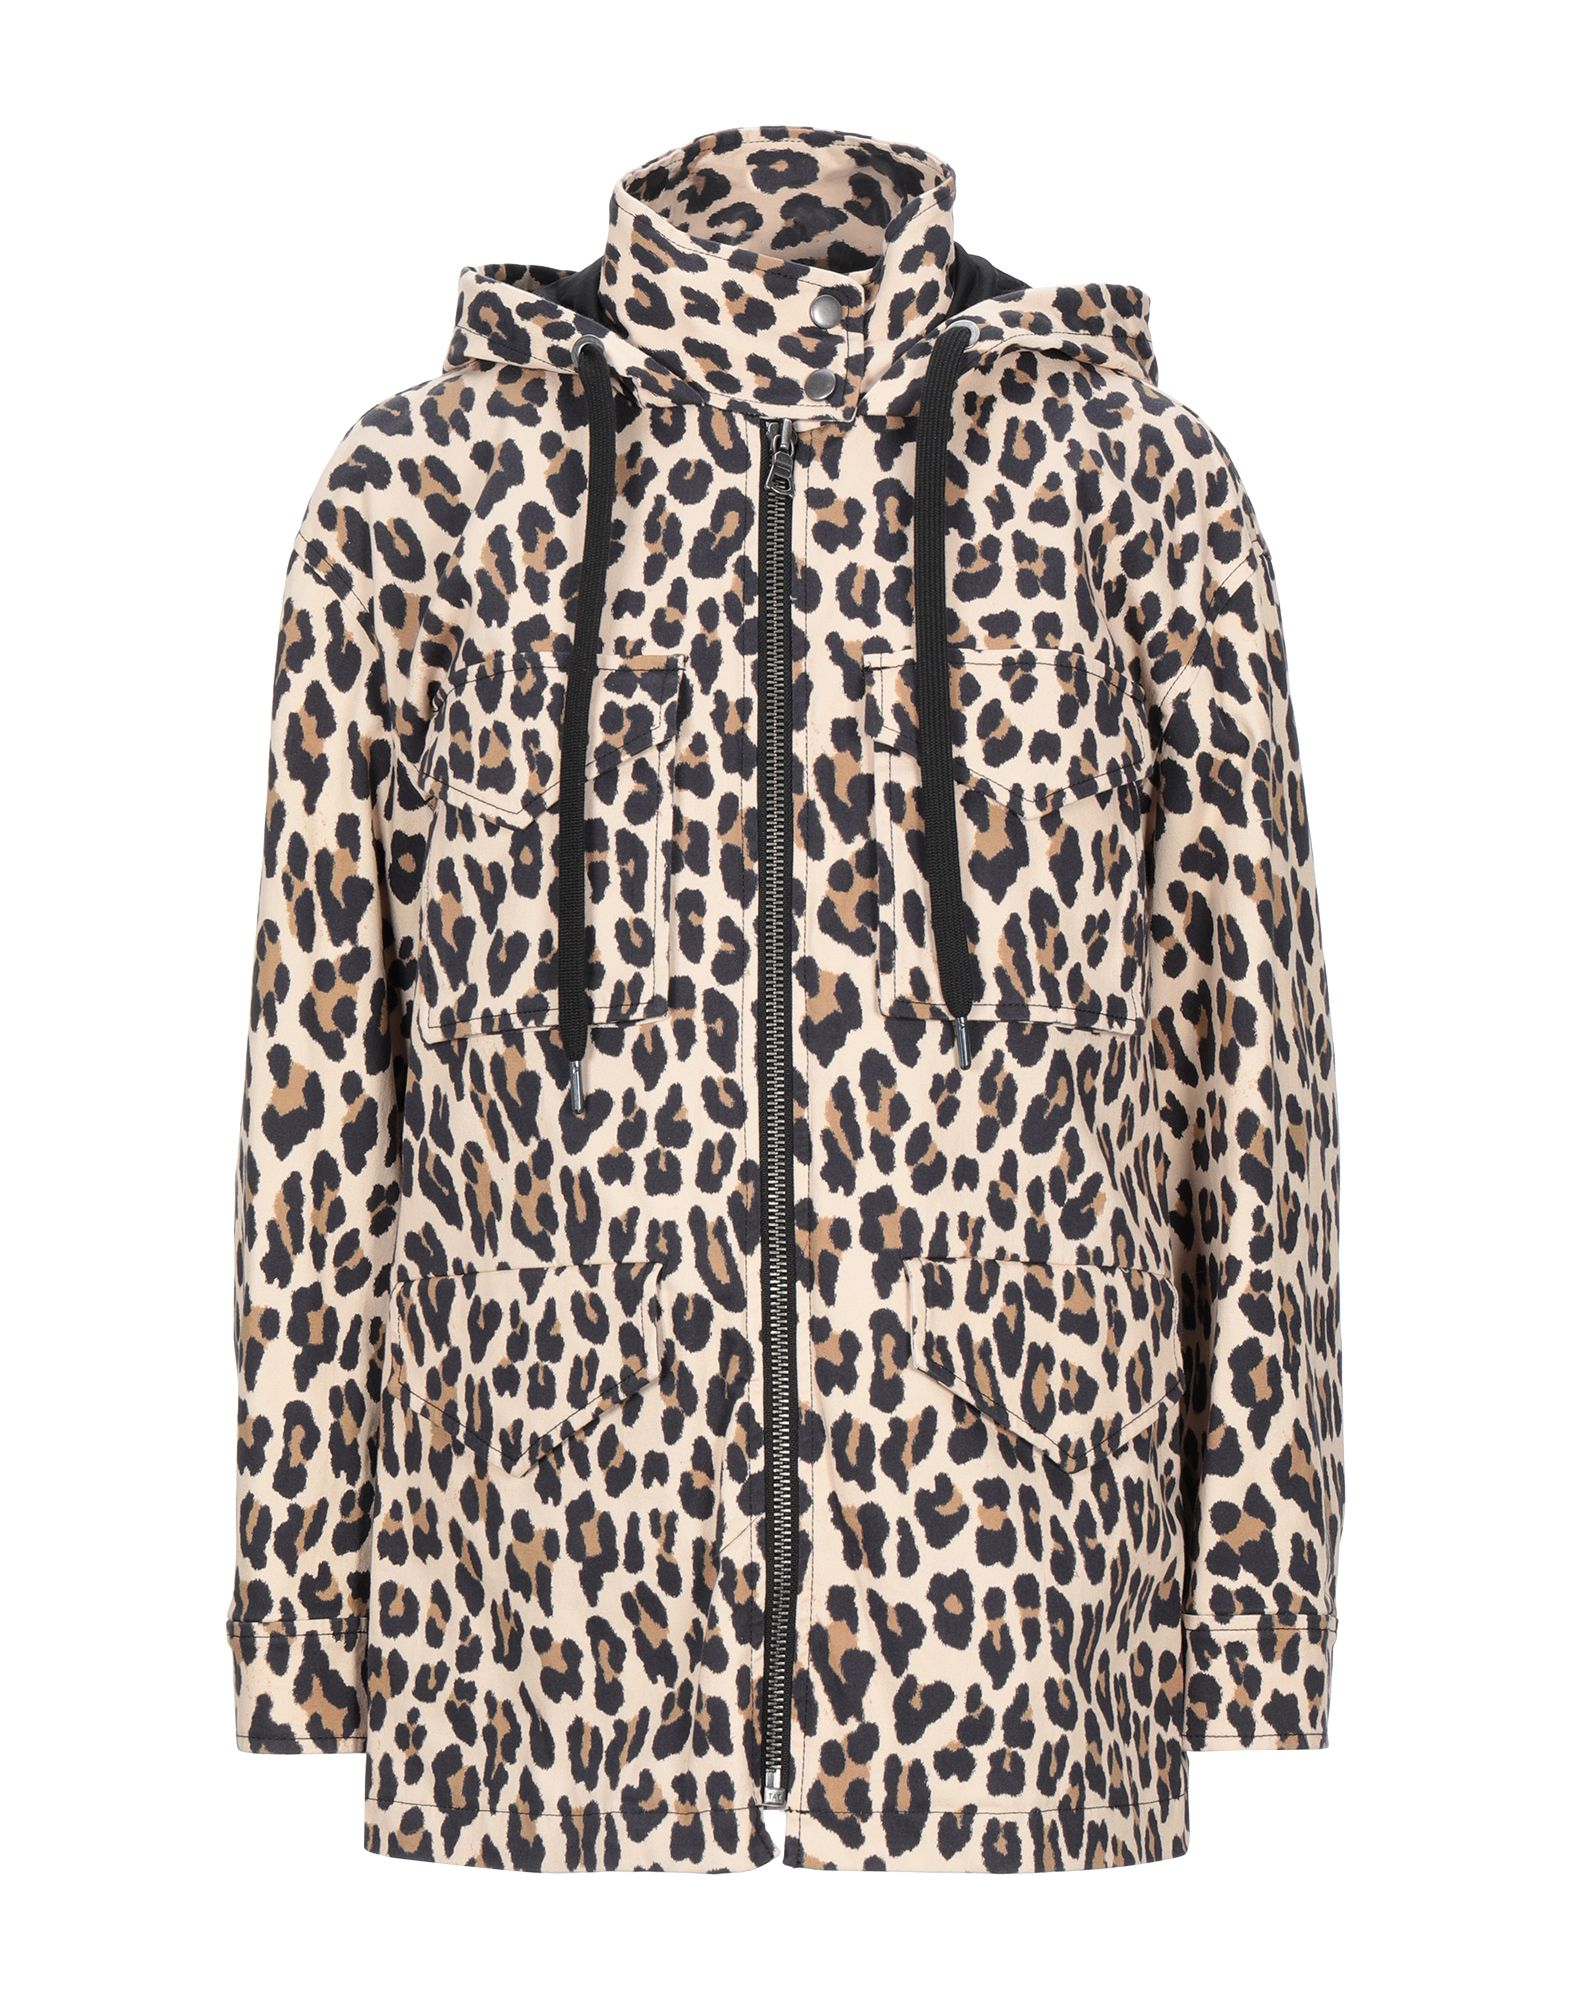 ALICE + OLIVIA Jackets. plain weave, logo, leopard-print, single-breasted, zipper closure, hooded collar, multipockets, long sleeves, fully lined, stretch, large sized. 97% Cotton, 3% Elastane